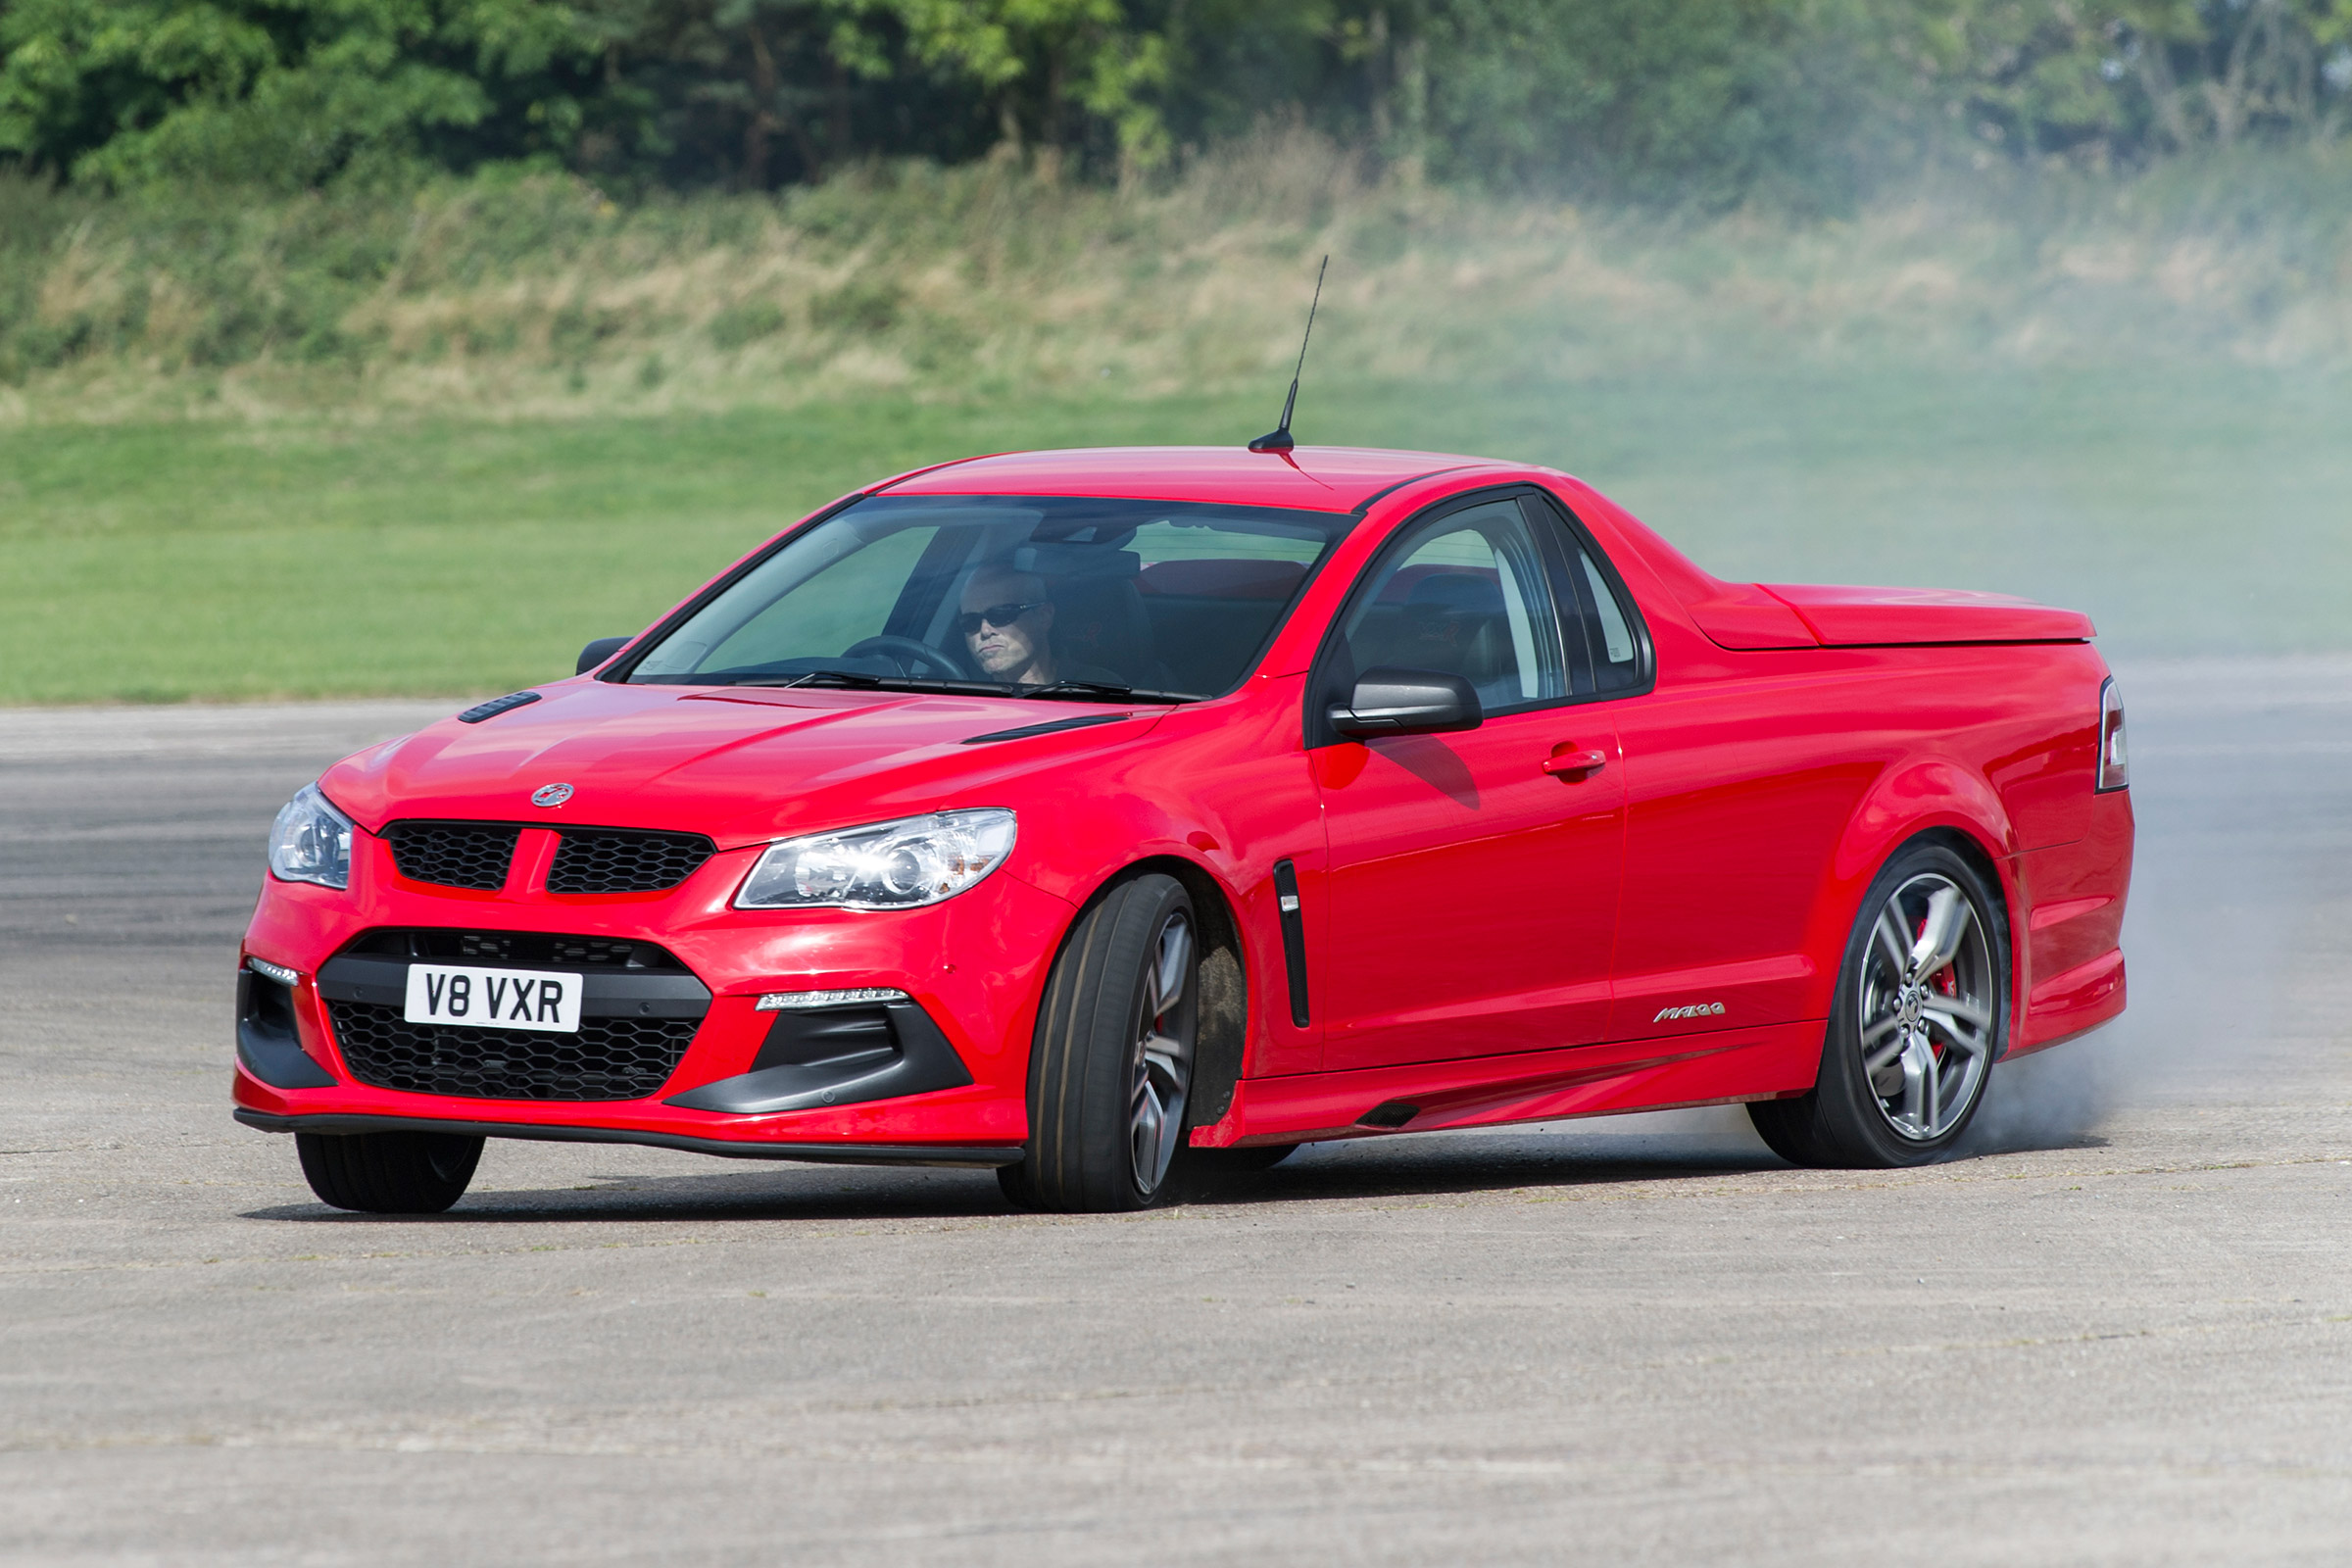 Featured Image of 2017 Vauxhall VXR8 Maloo